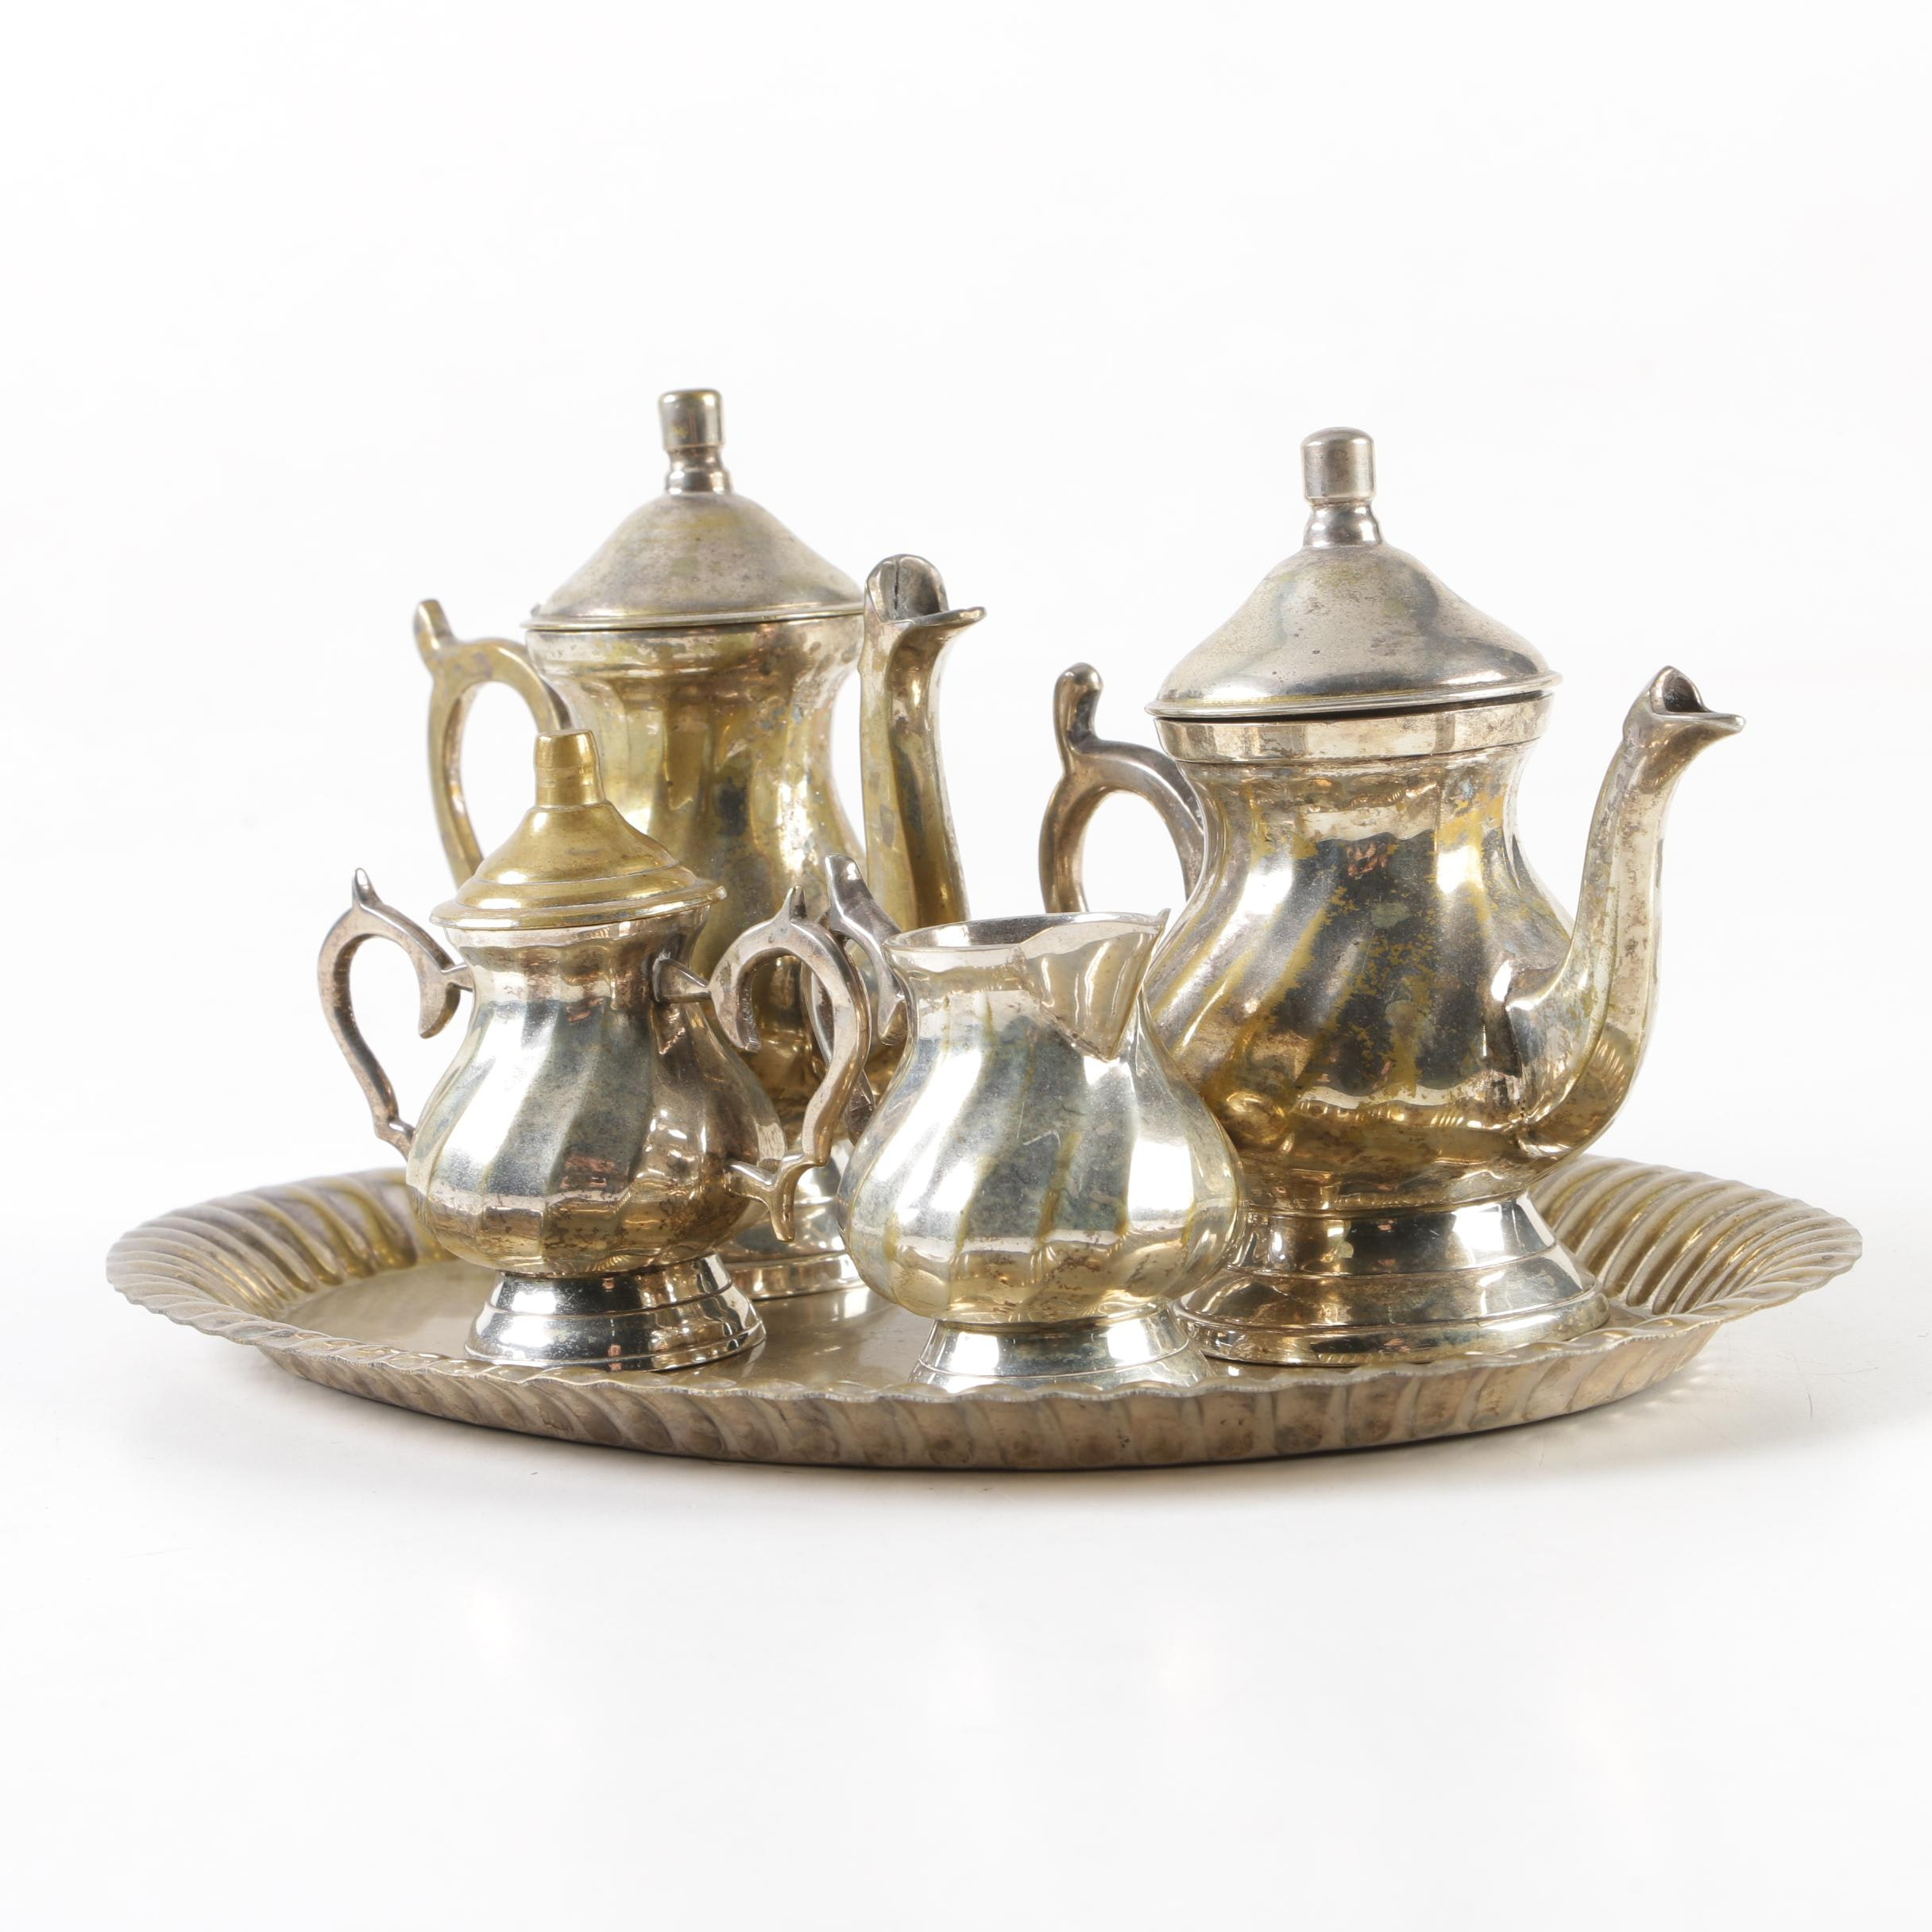 Silver-Plated Brass Miniature Tea and Coffee Service Set